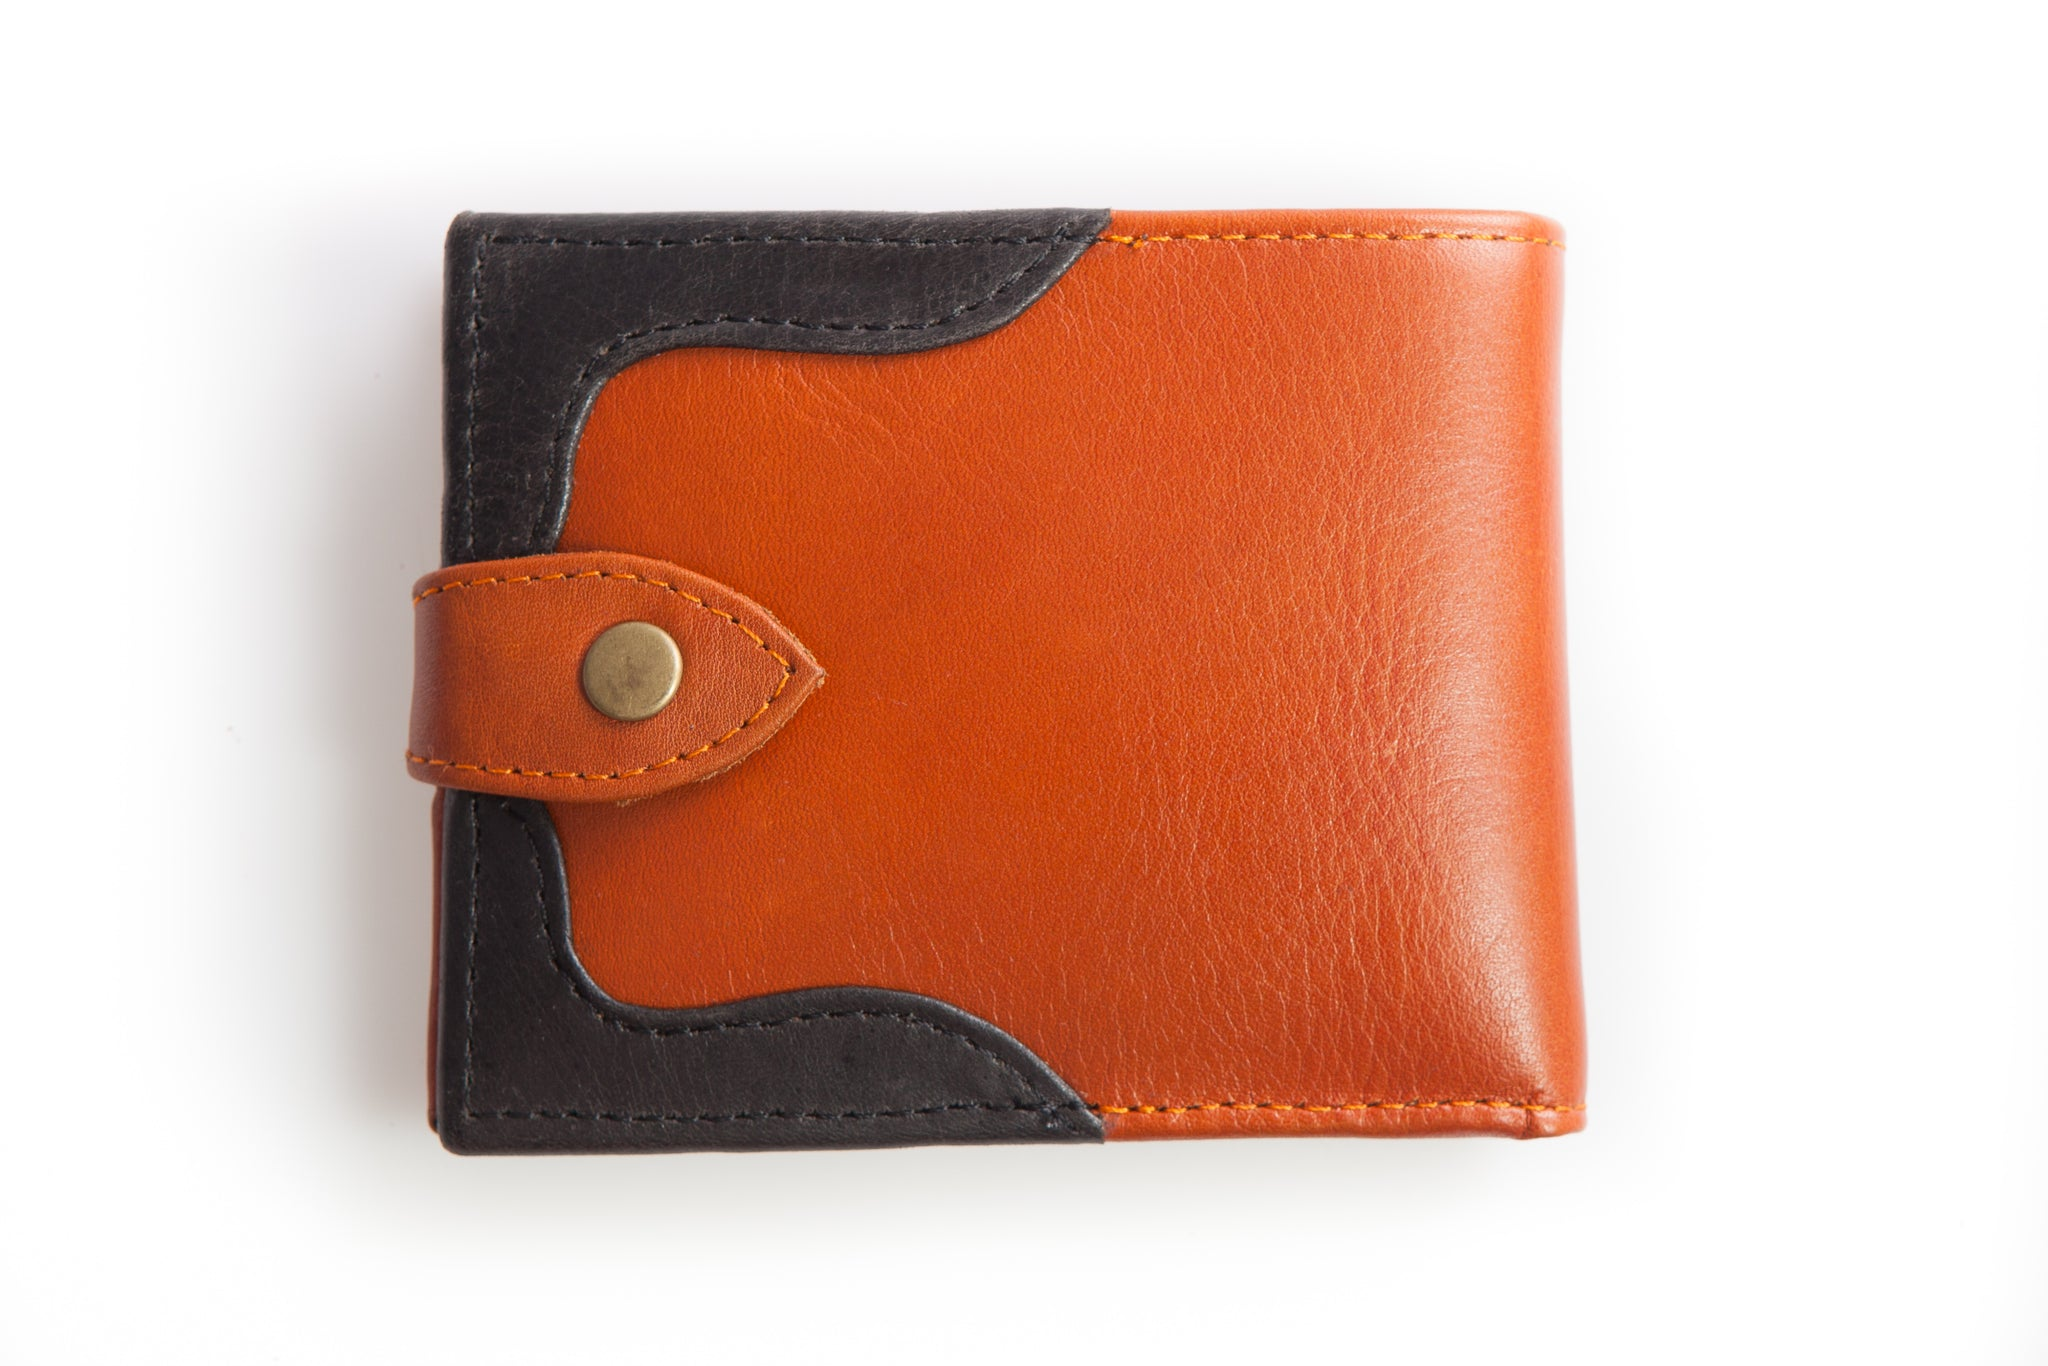 First of June, Pandawa, leather, vegetable tanned leather, wallet